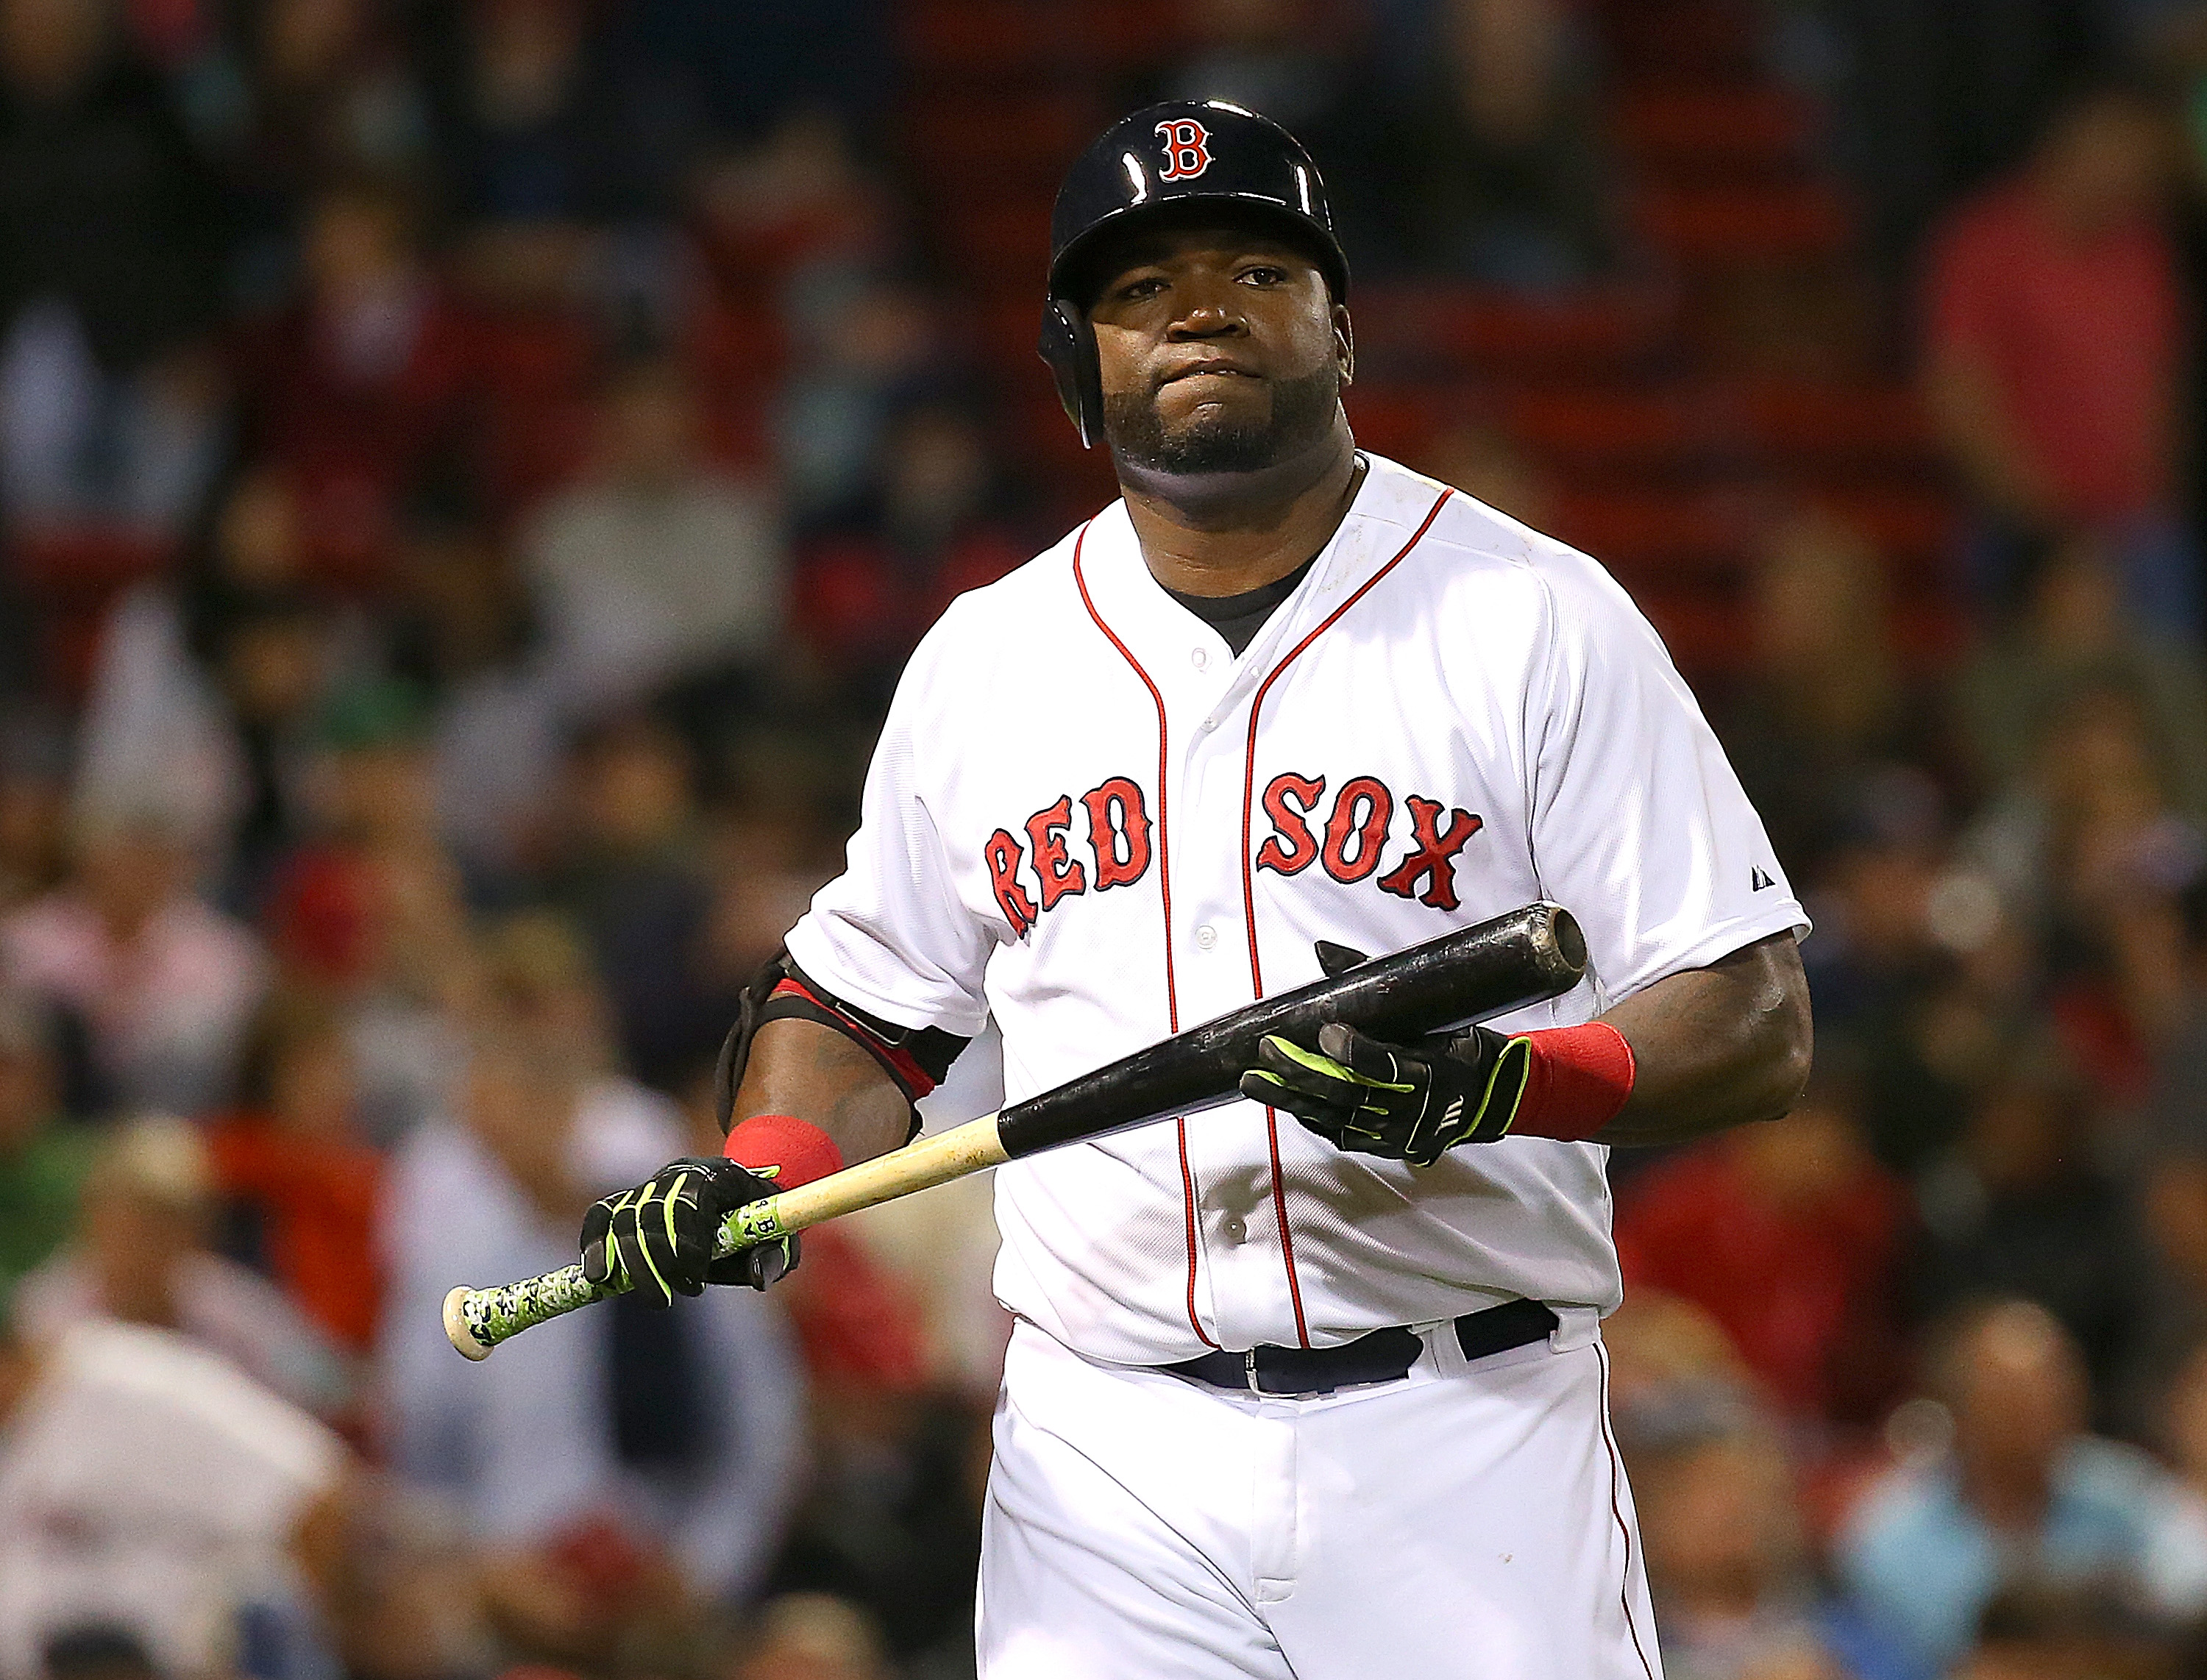 David Ortiz of the Boston Red Sox during the eighth inning of the game against the Tampa Bay Rays at Fenway Park on September 22, 2015 in Boston, Massachusetts.